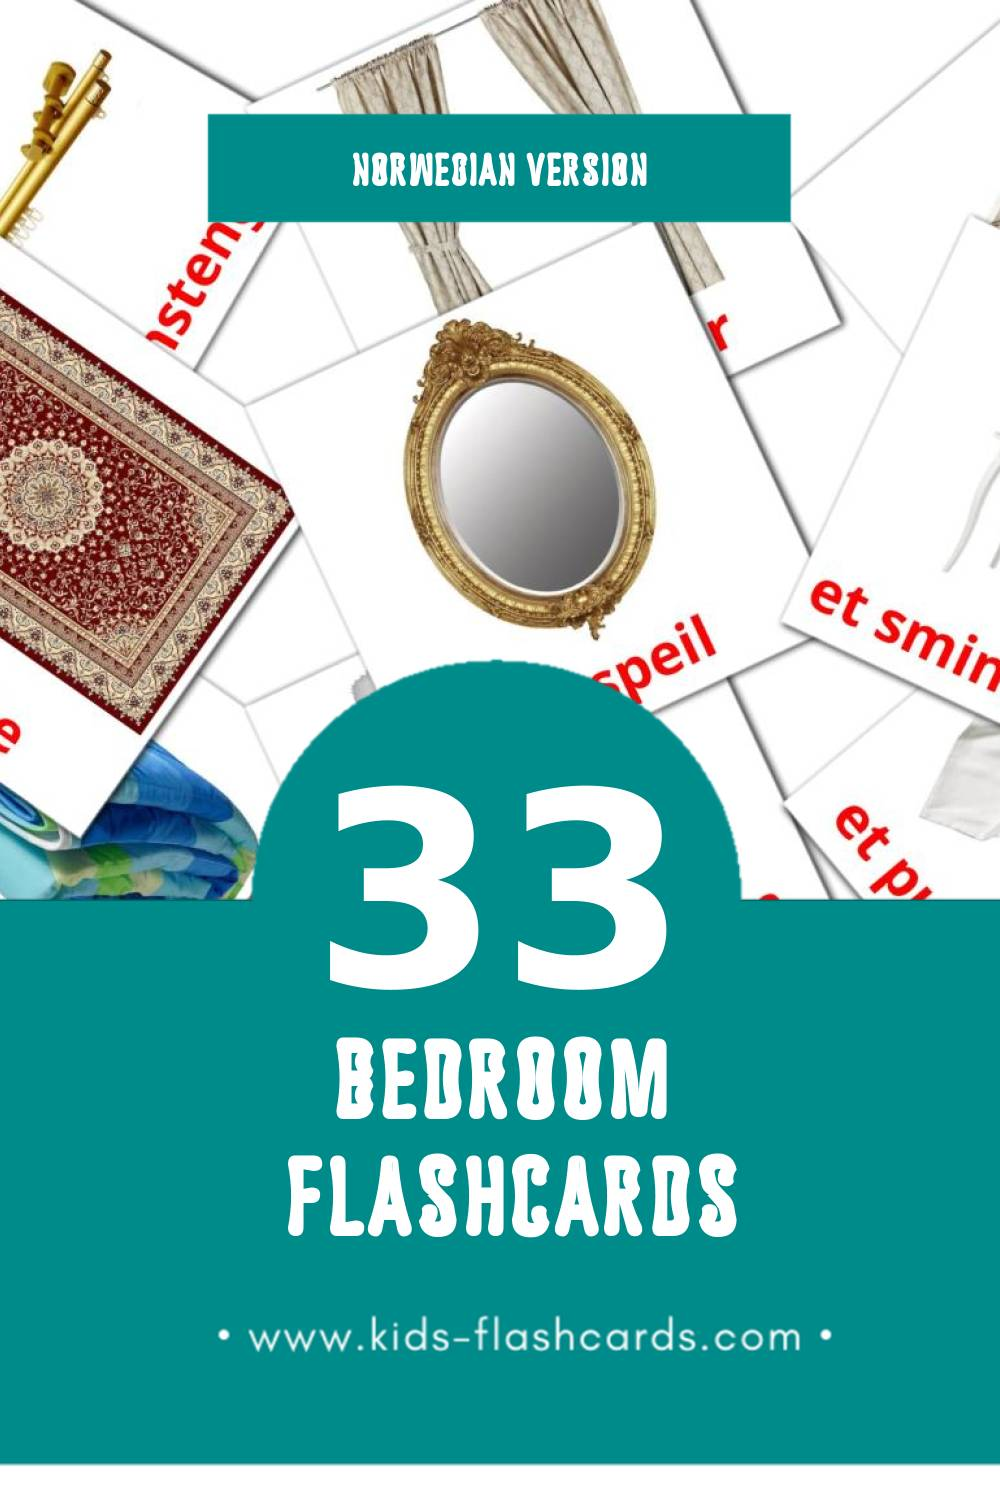 Visual soverom Flashcards for Toddlers (33 cards in Norwegian)